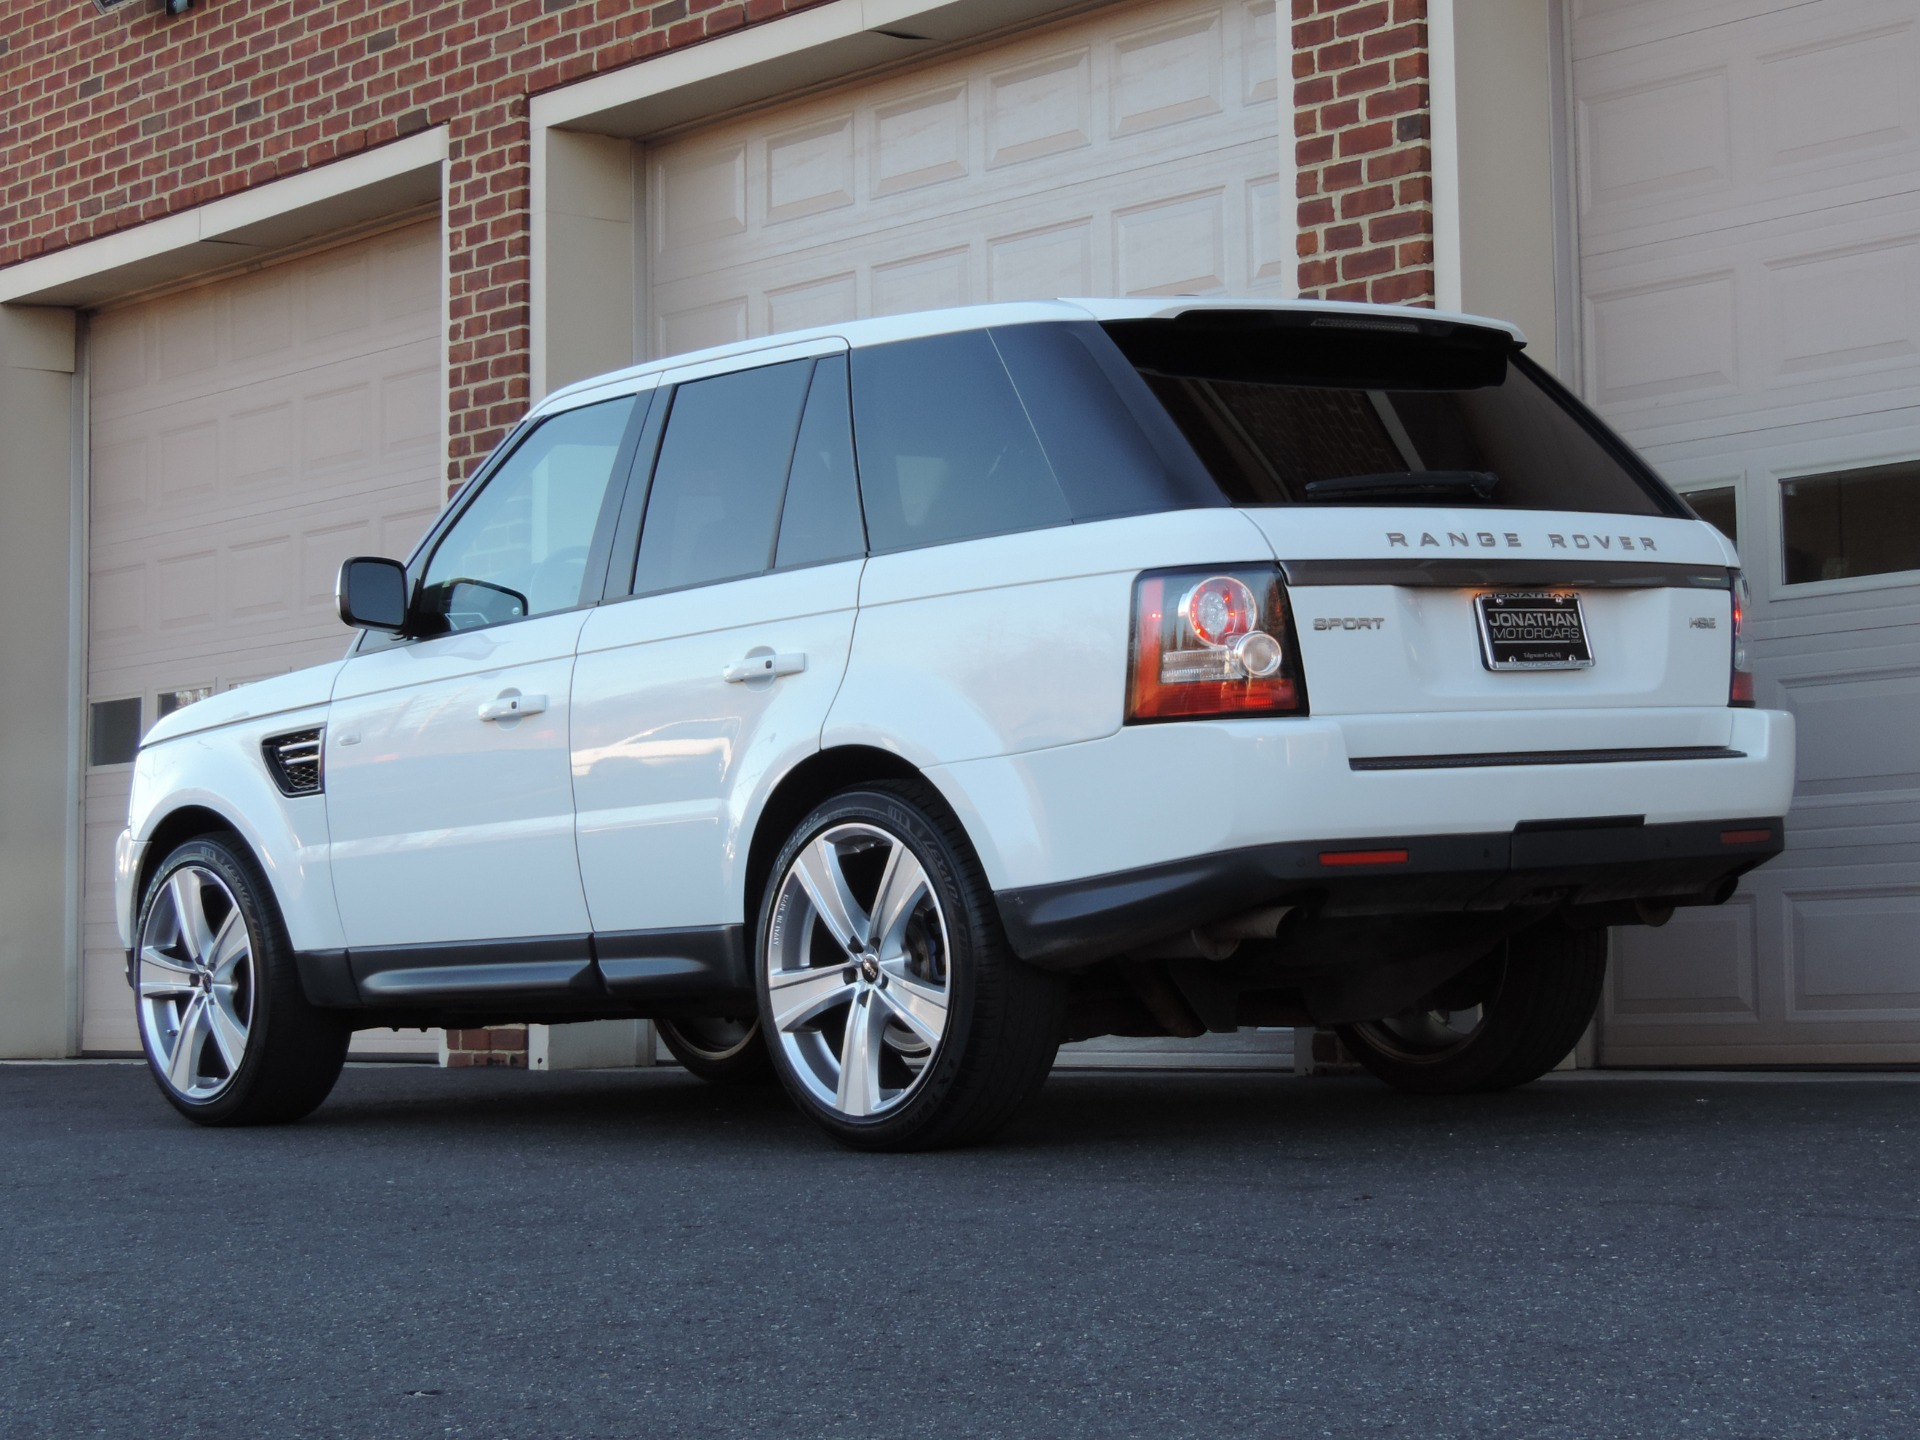 2012 Land Rover Range Rover Sport Hse Stock 755954 For